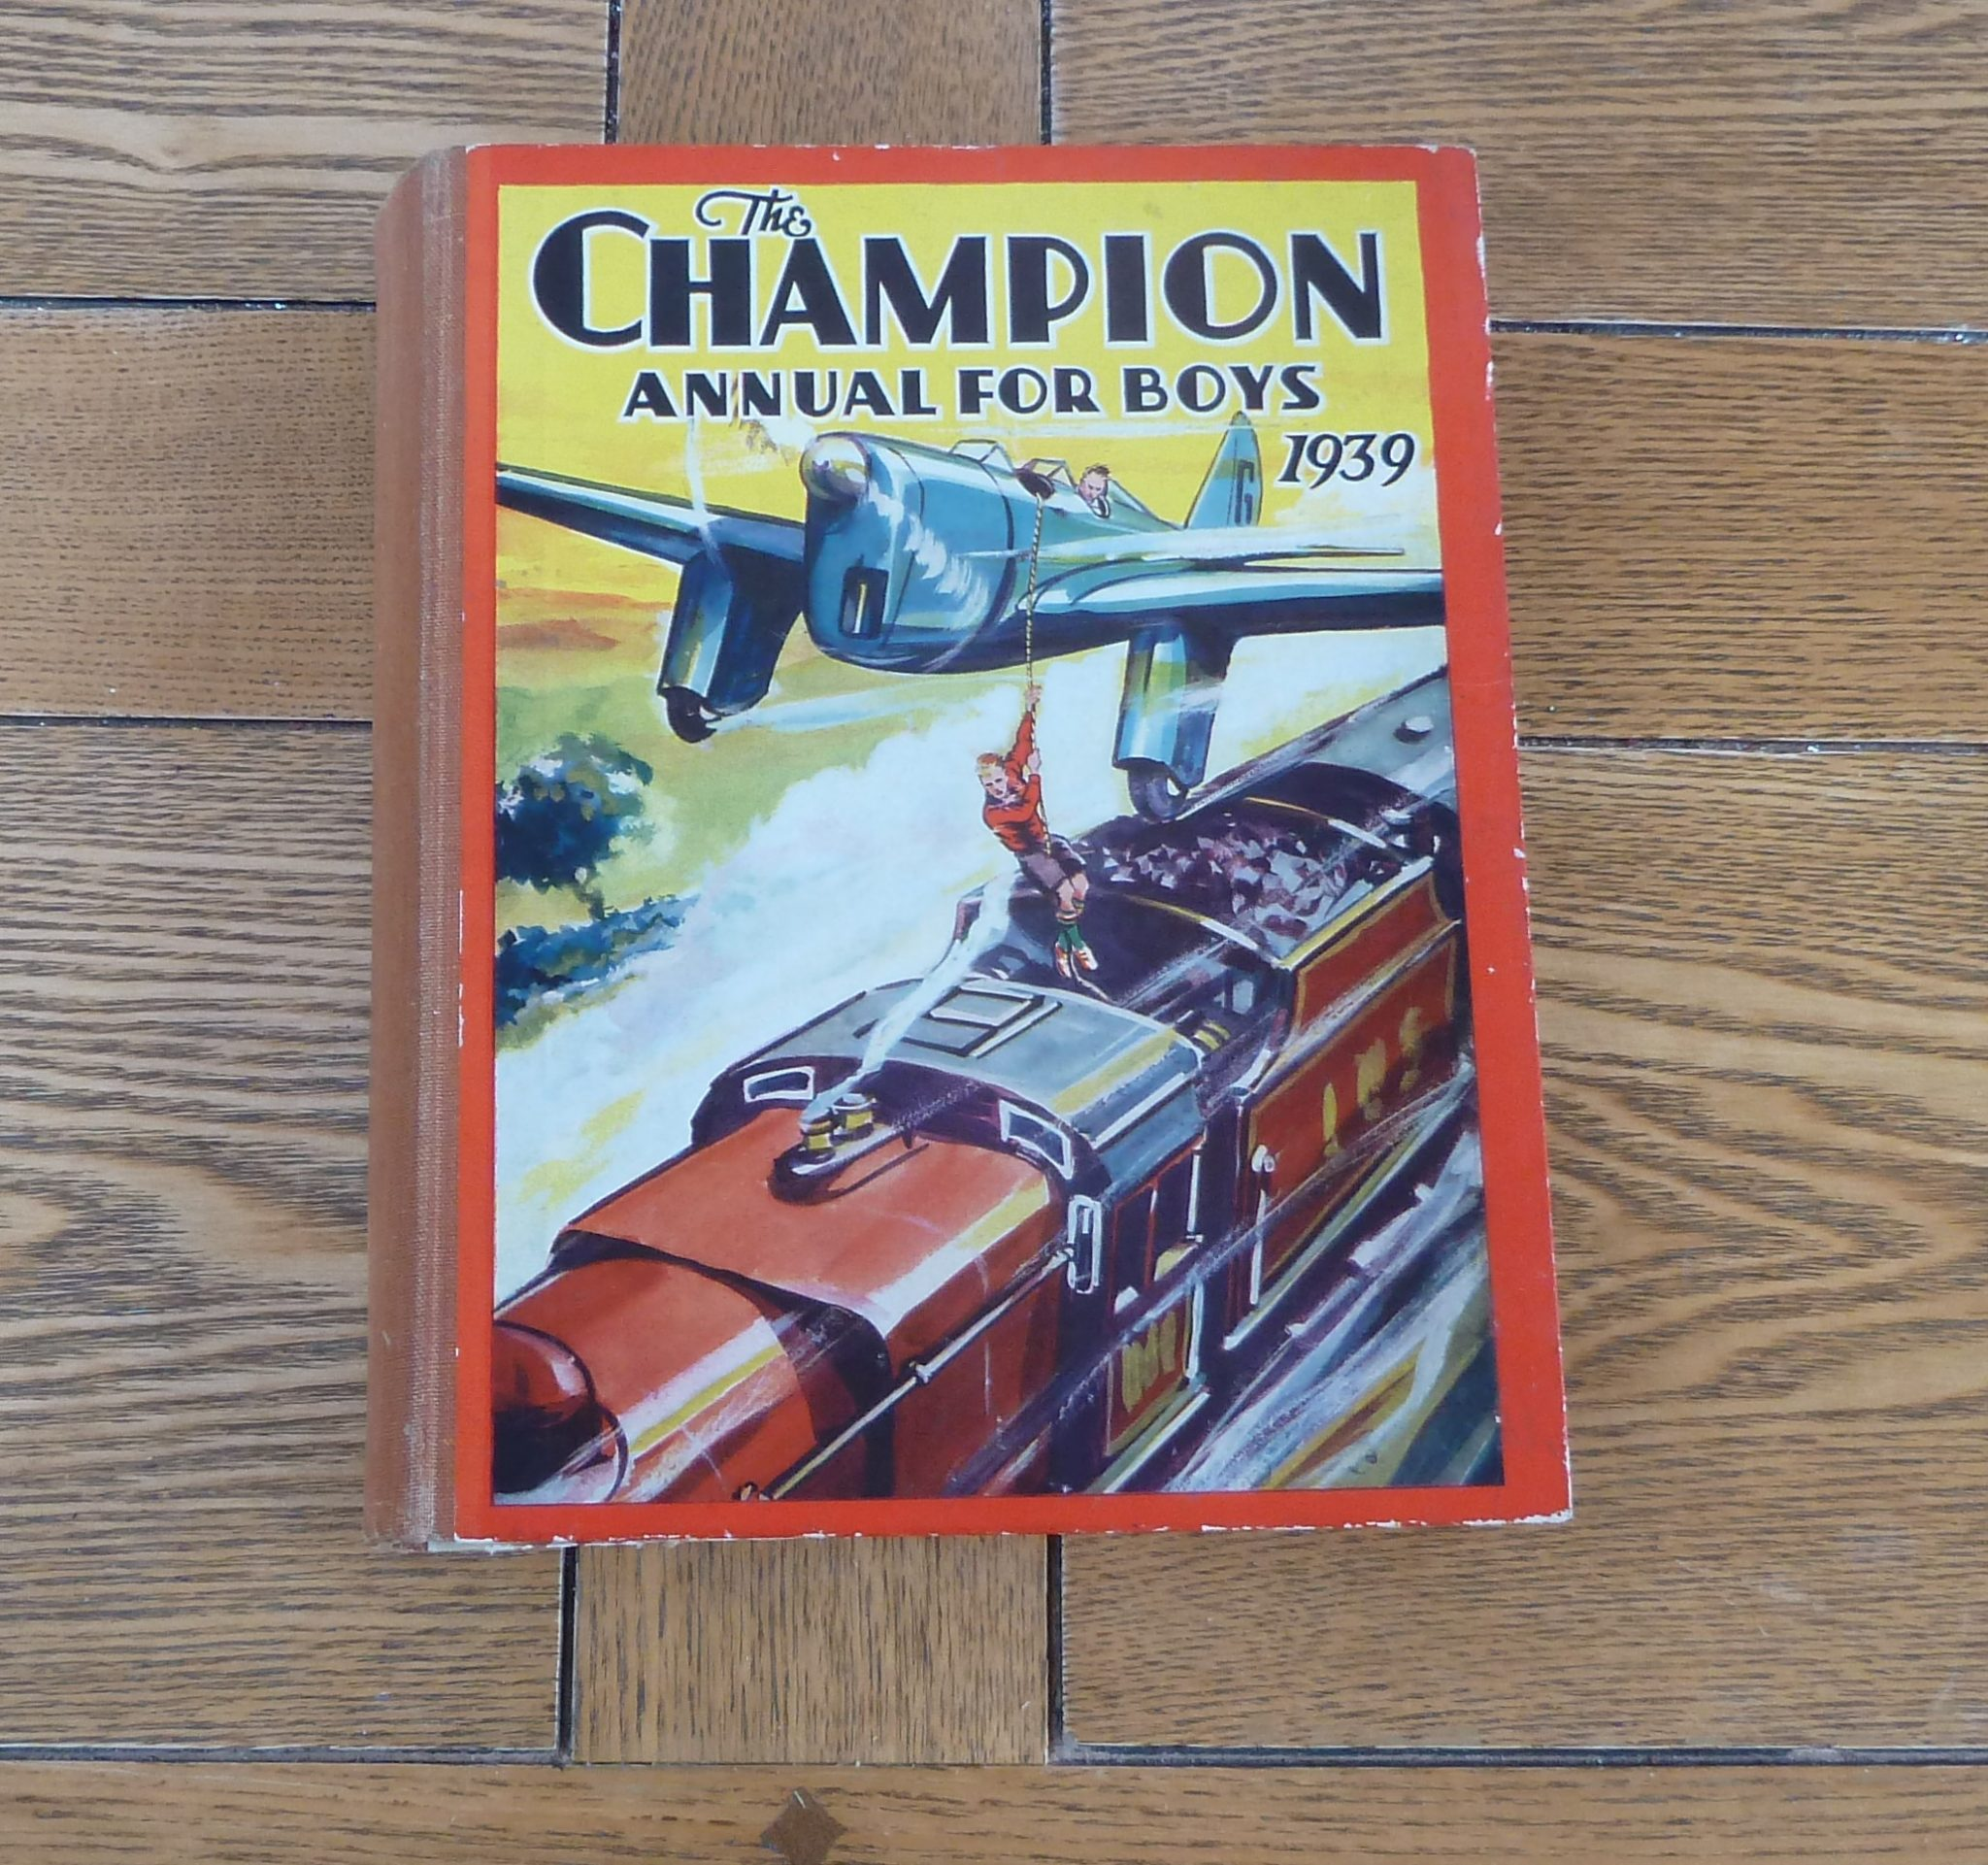 The Champion Annual For Boys 1939